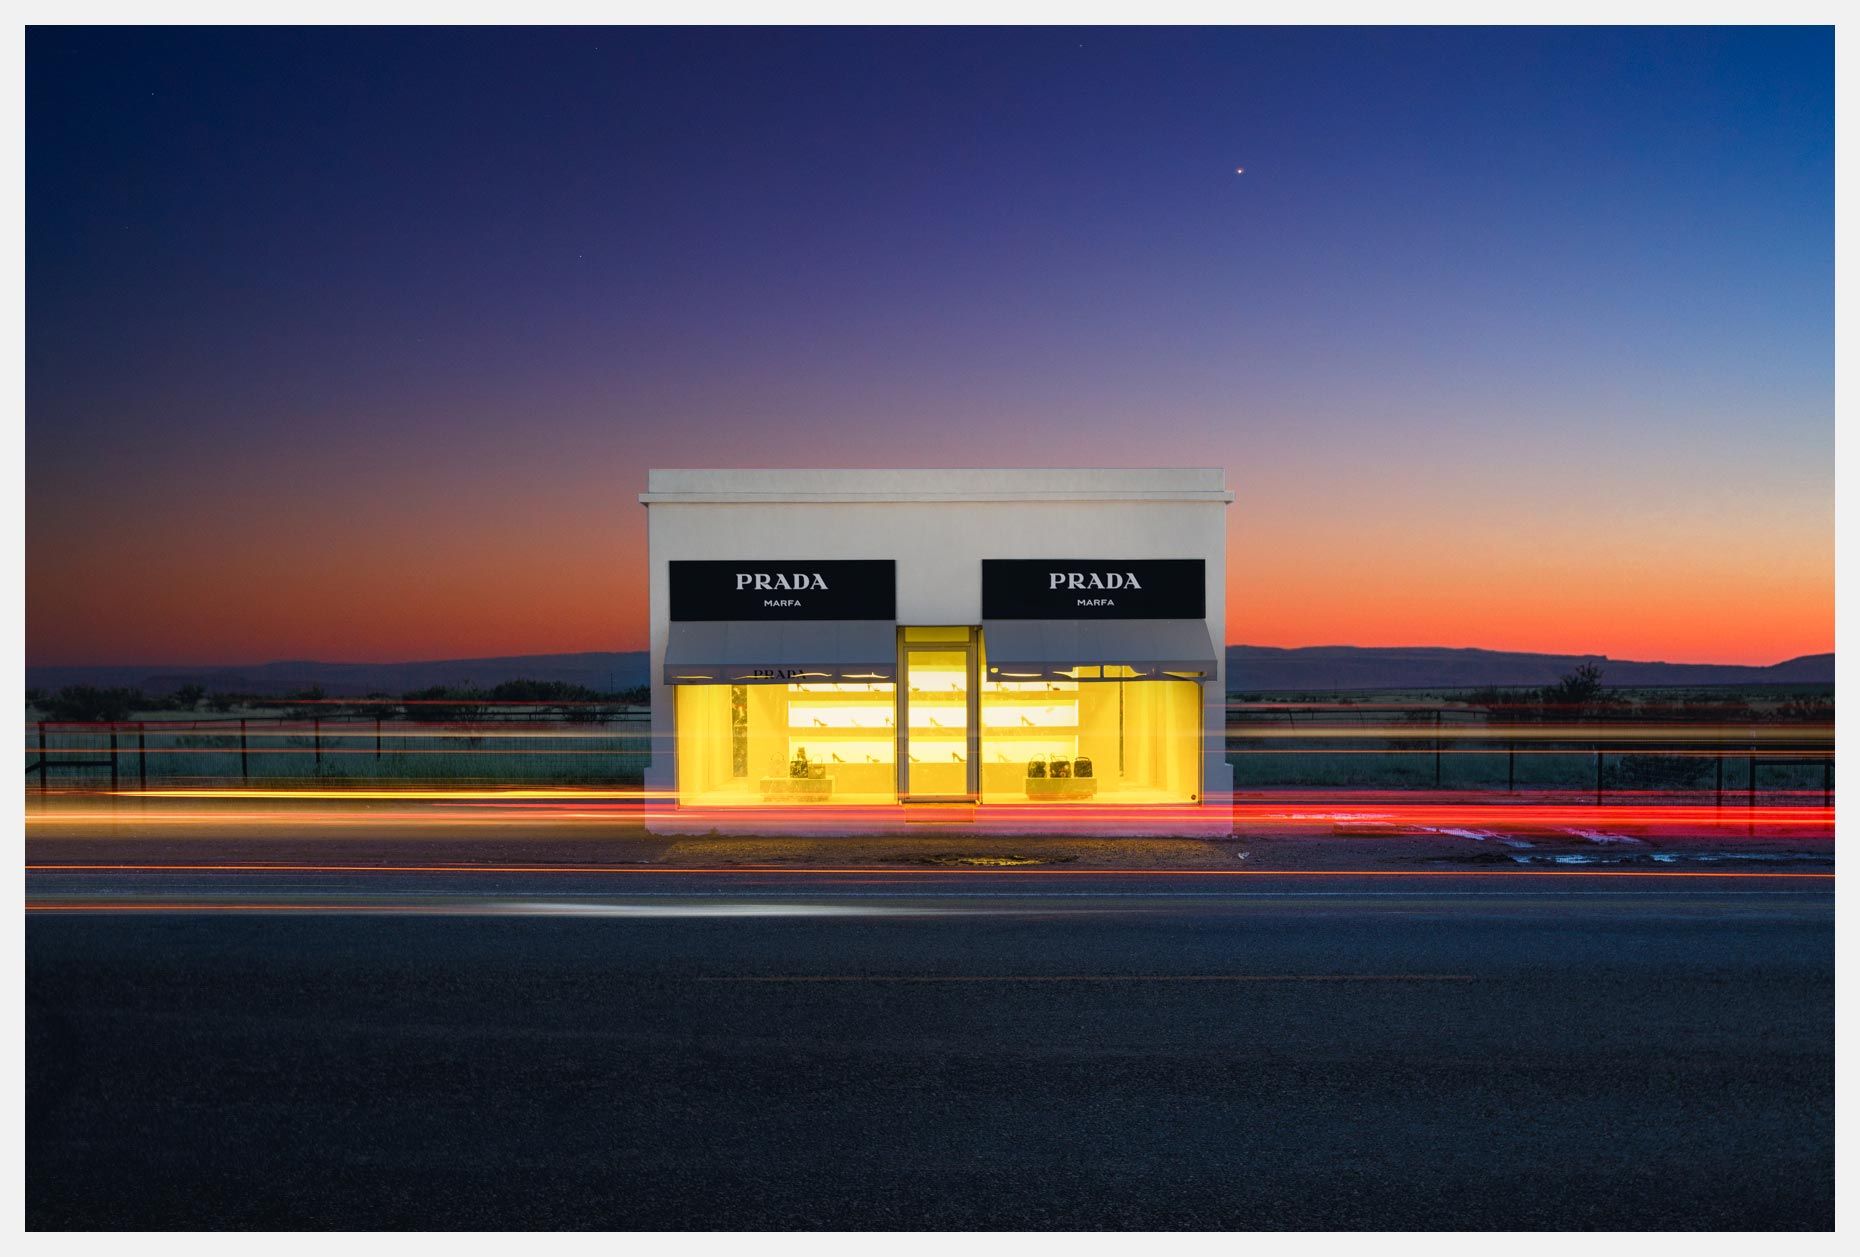 Prada Marfa with Texas Sunset